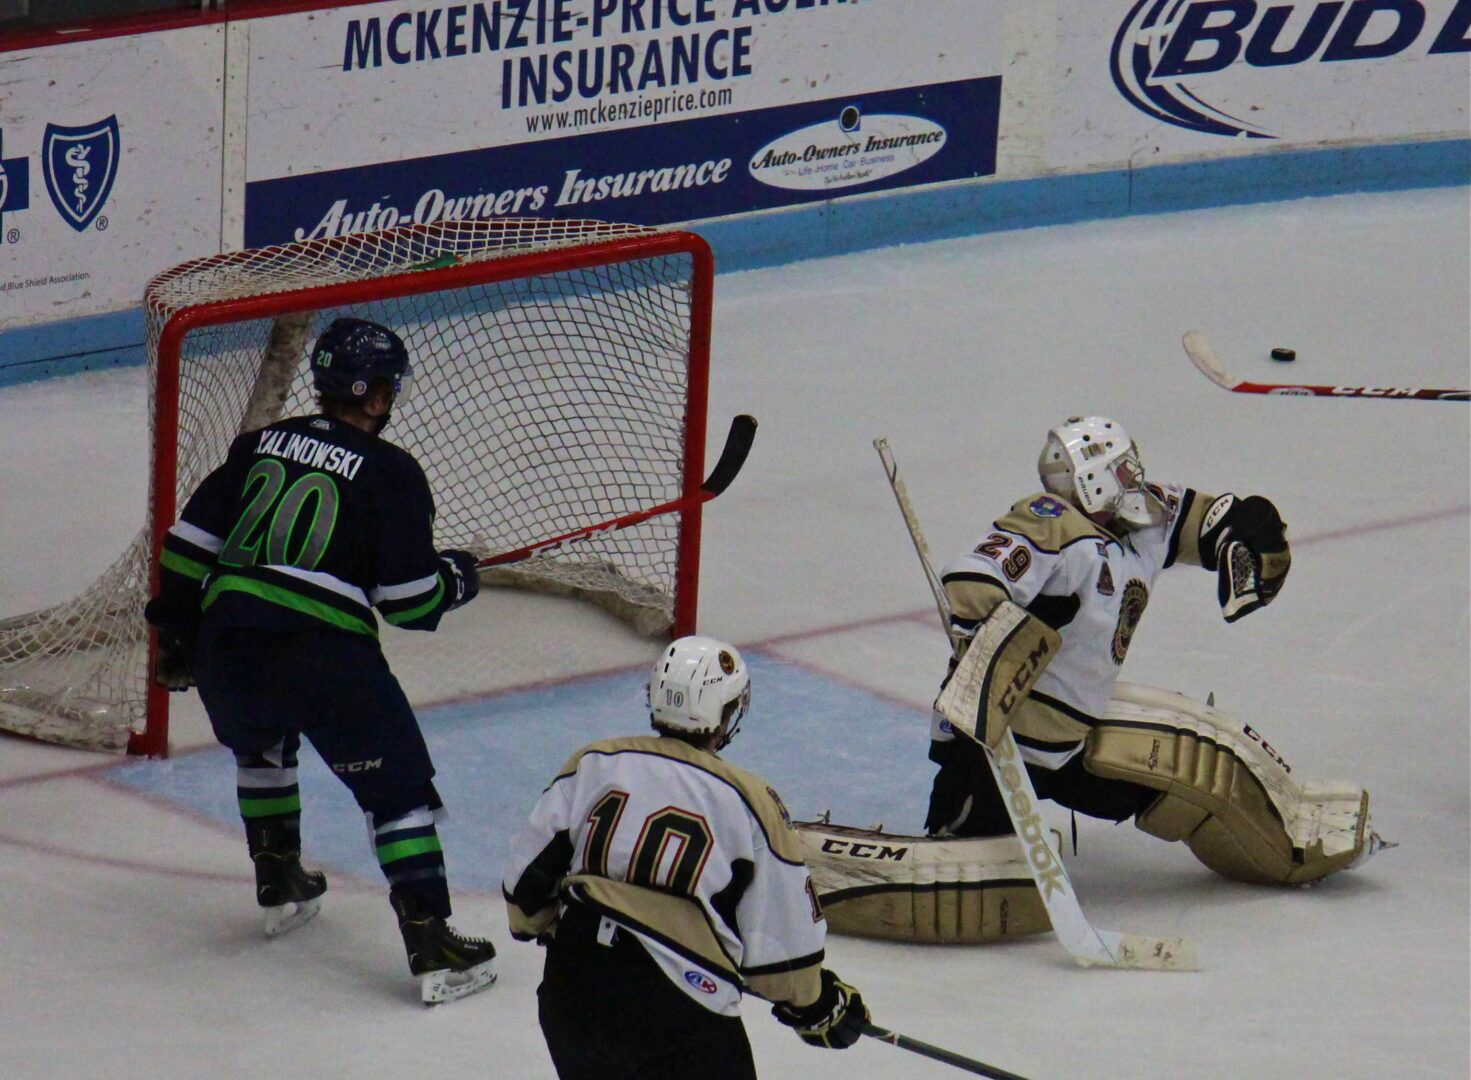 Lumberjacks rally for a 4-1 victory over Bloomington, despite injuries and sickness that have decimated the lineup